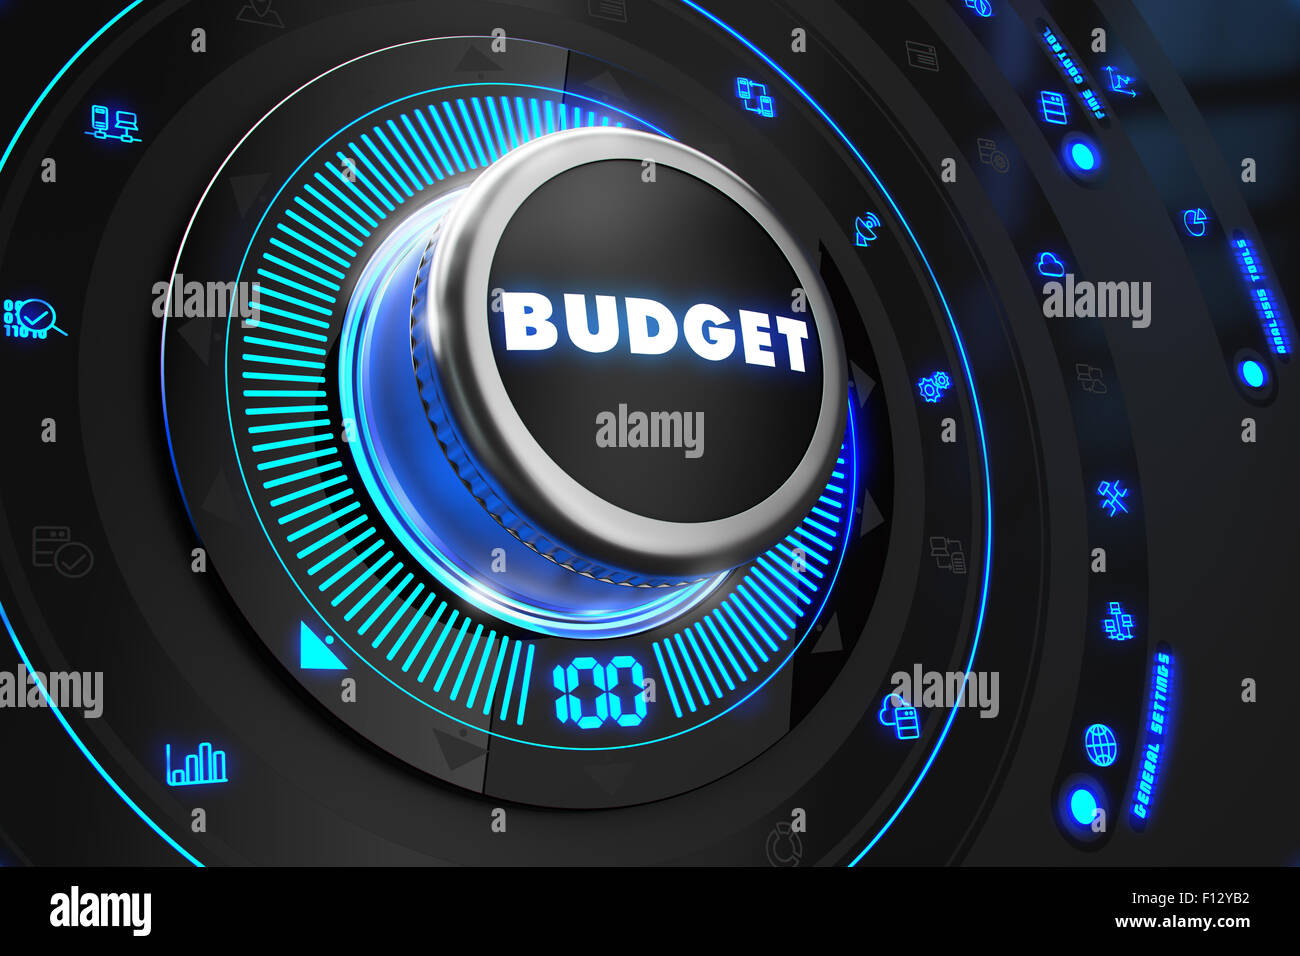 Budget Controller on Black Control Console. - Stock Image